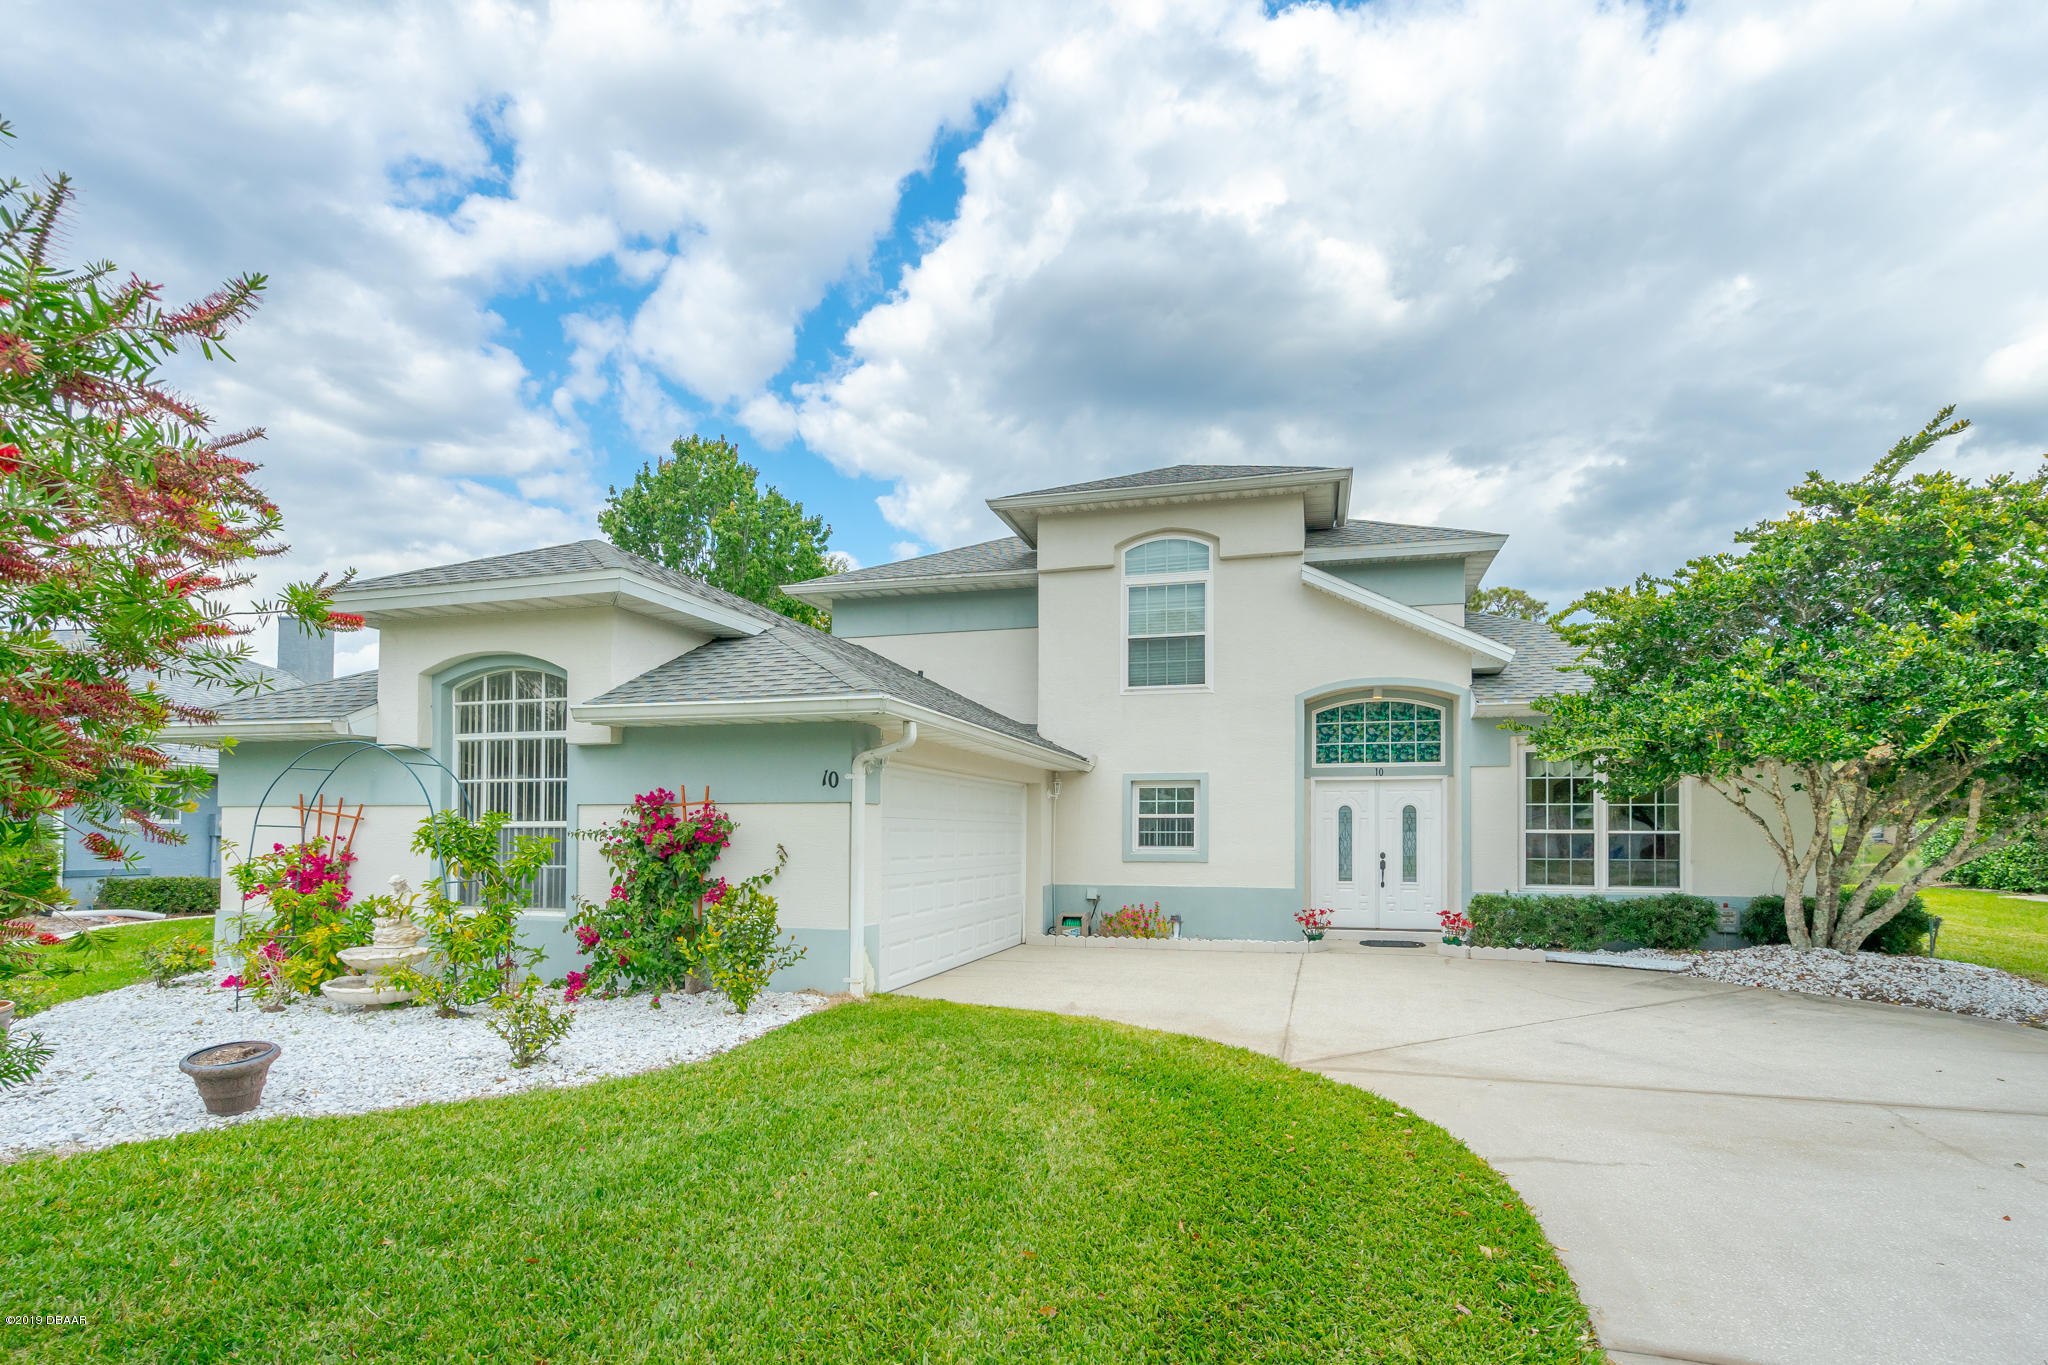 10  Creek Bluff Way, Ormond Beach, Florida